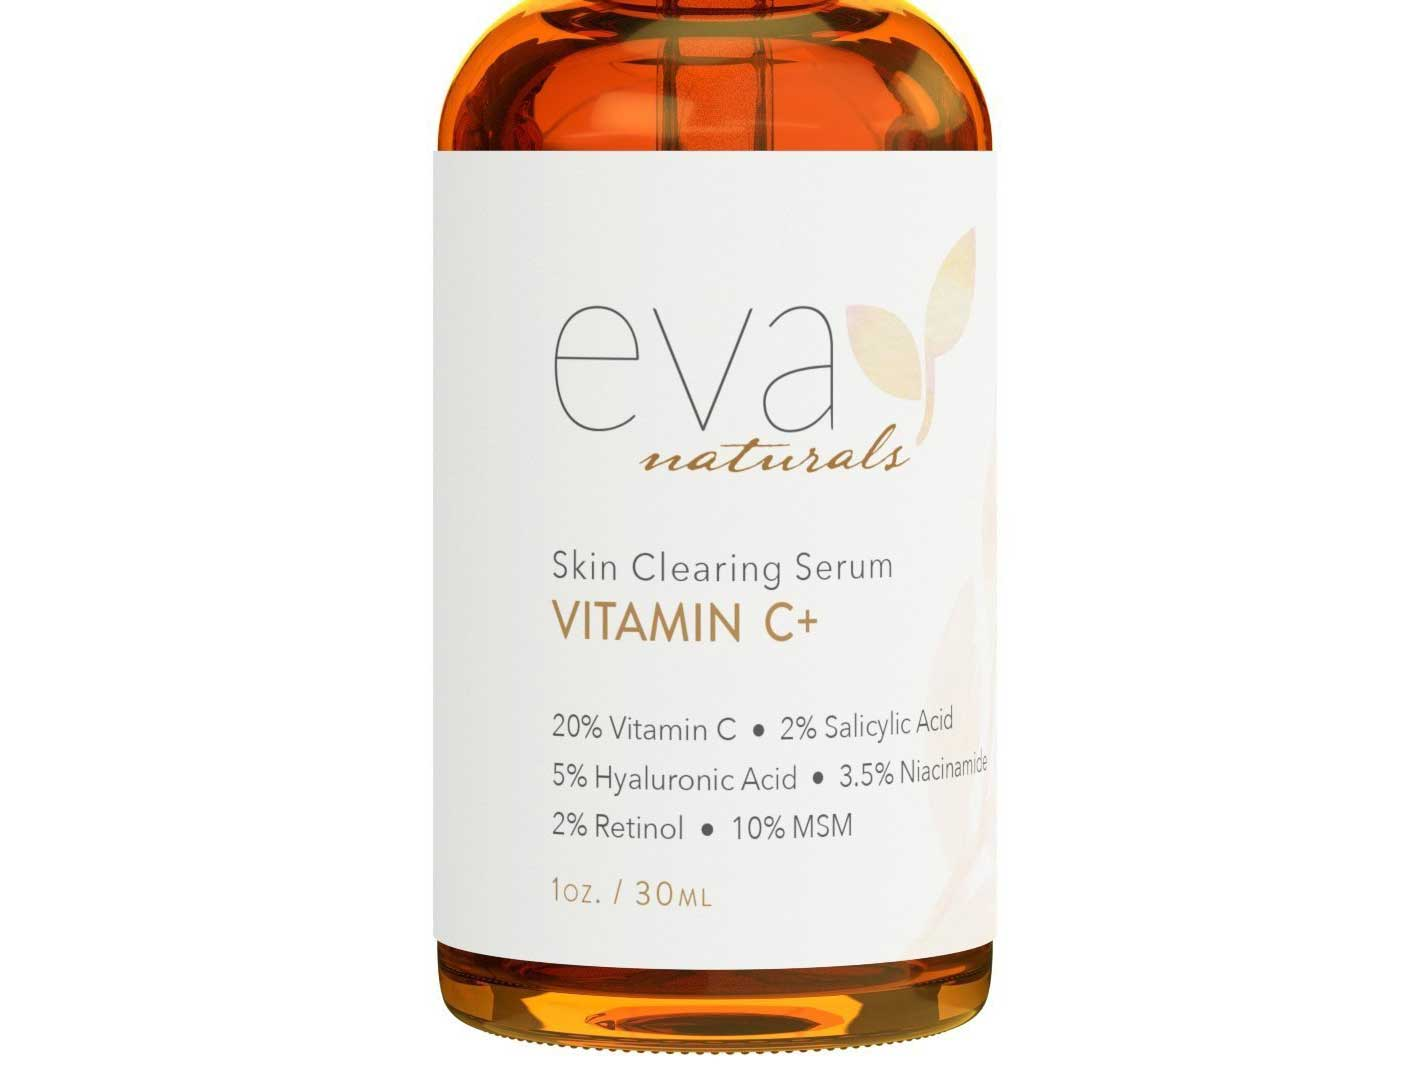 Vitamin C Serum Plus 2% Retinol, 3.5% Niacinamide, 5% Hyaluronic Acid, 2% Salicylic Acid, 10% MSM, 20% Vitamin C - Skin Clearing Serum - Anti-Aging Skin Repair, Supercharged Face Serum (1 oz)